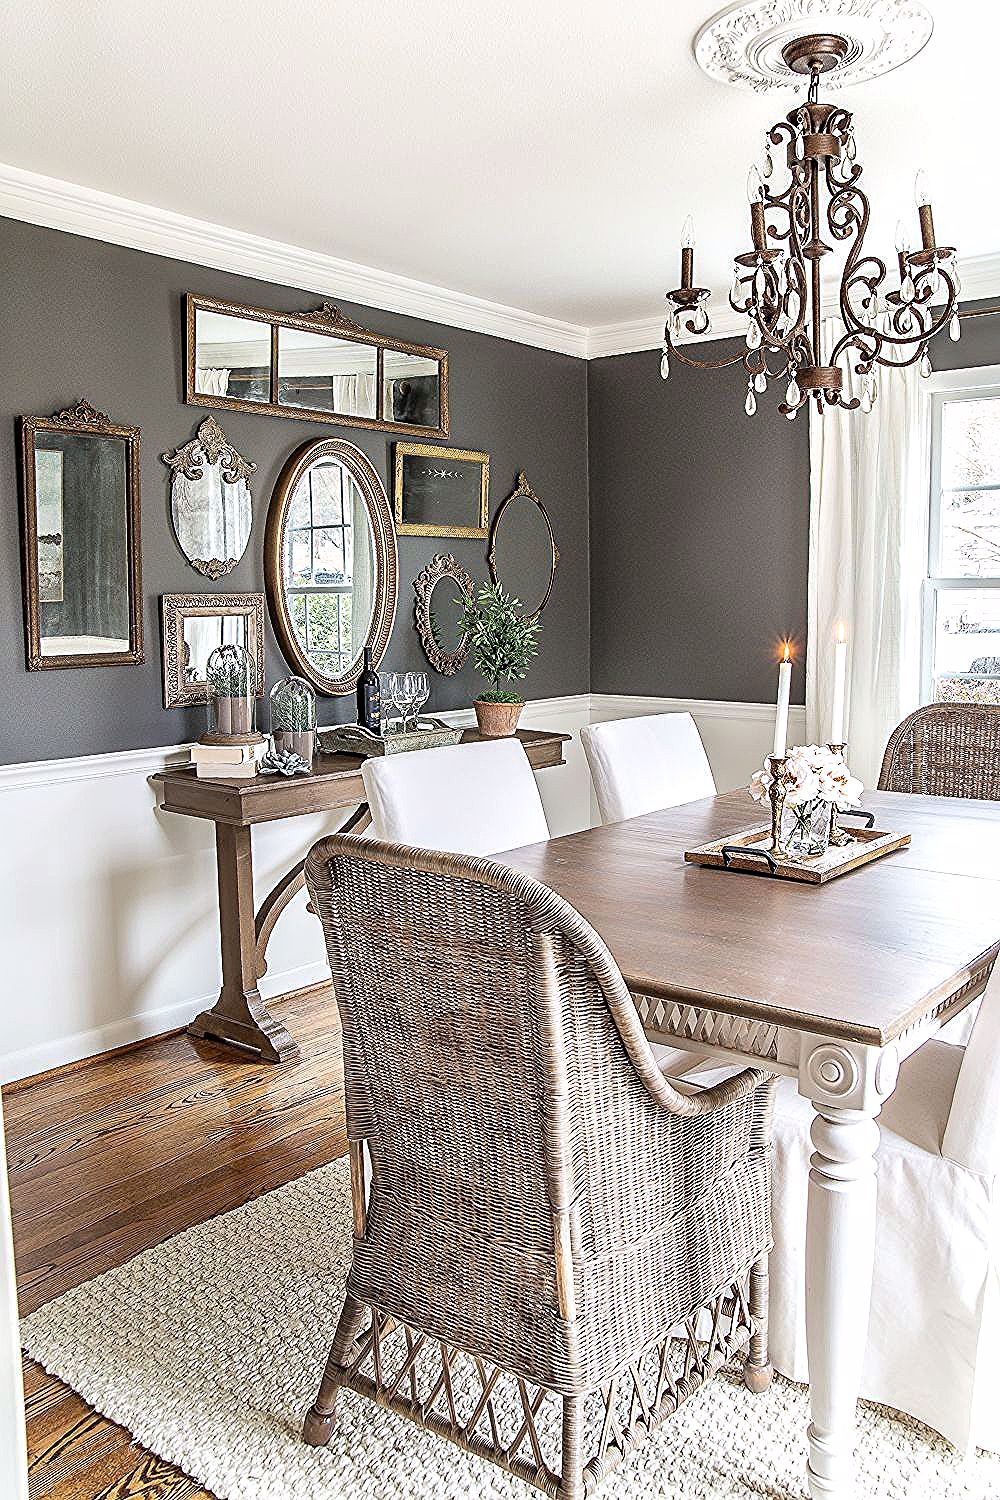 Dining Room Ideas In 2020 Eclectic Dining Room Dining Room